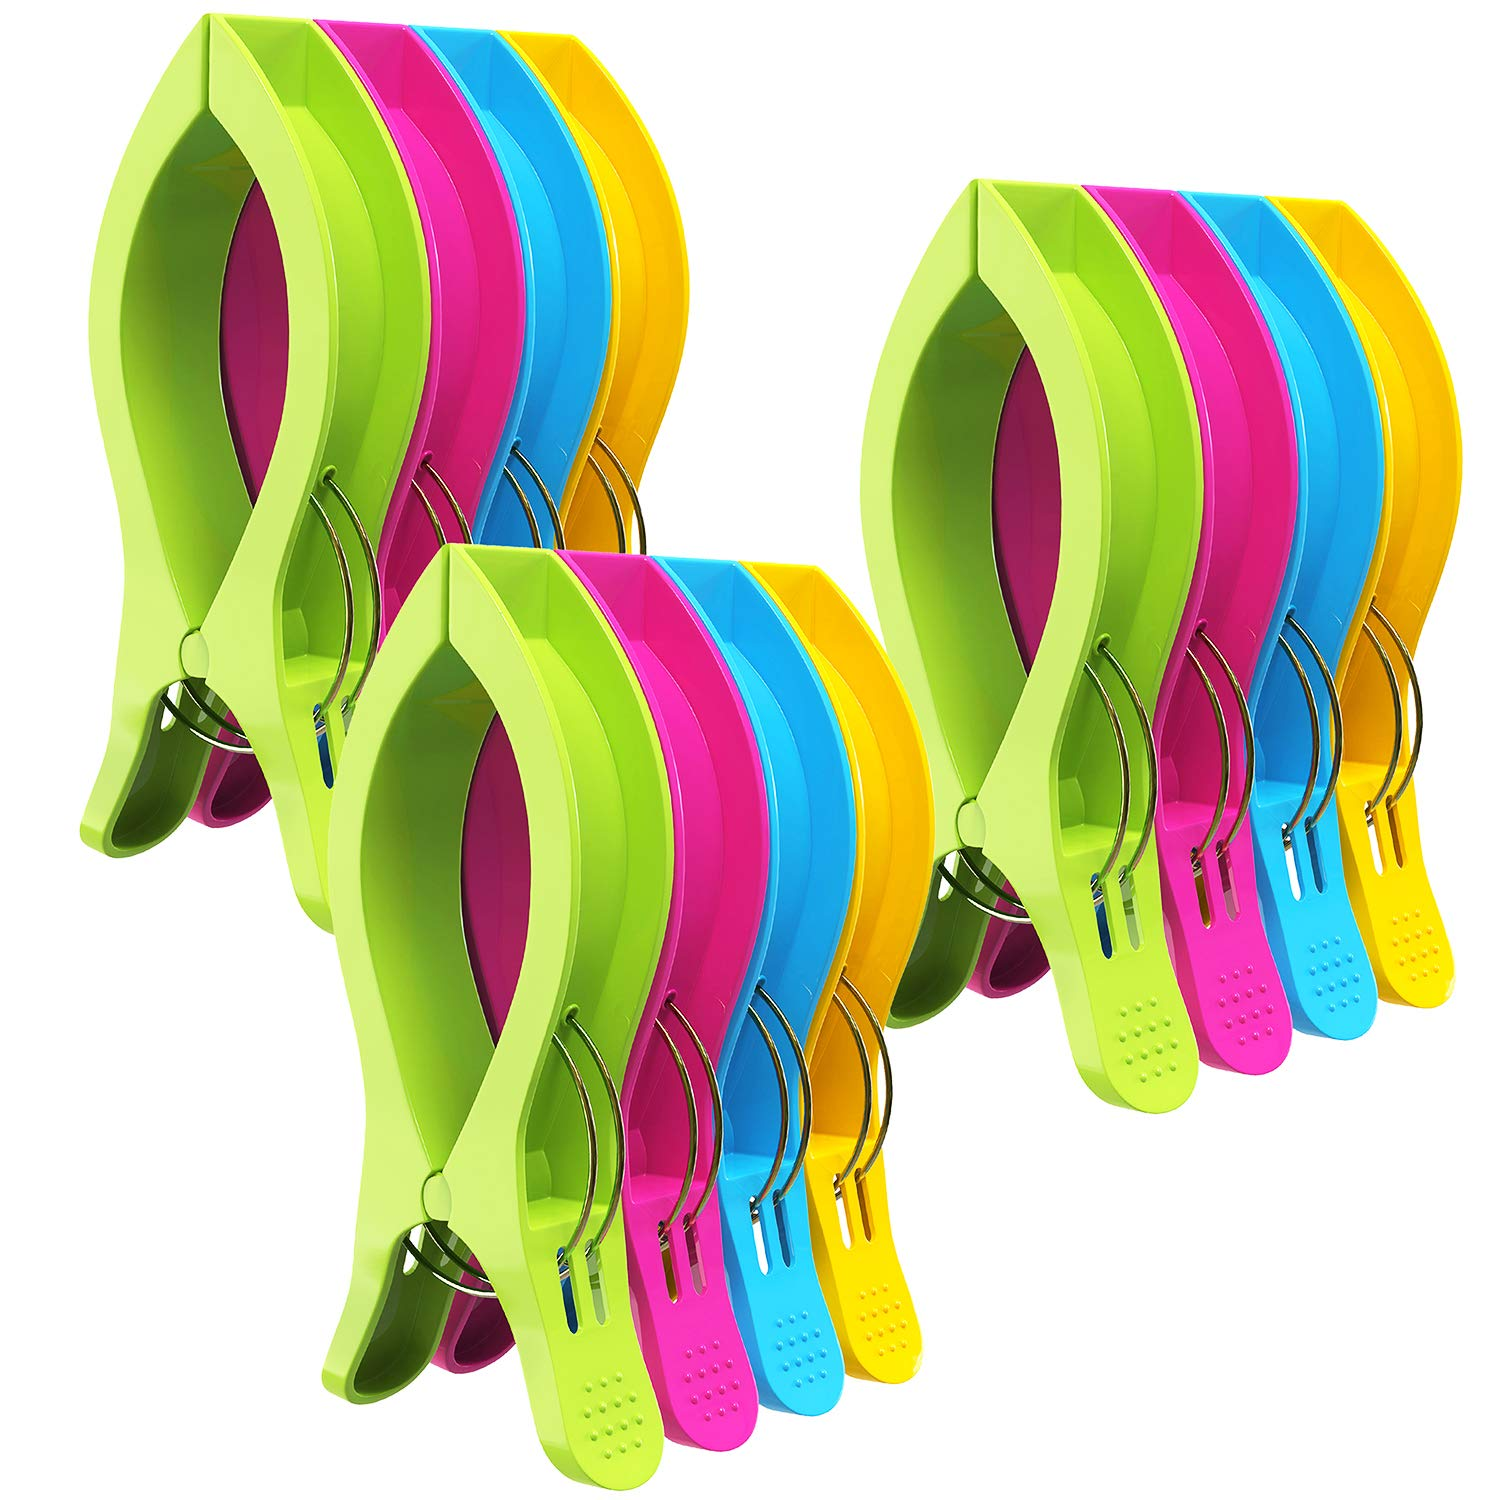 Attmu Beach Towel Clips for Beach Chairs(12 Pack), Towel Holder in Fun Bright Colors, Keep Towel from Blowing Away (D-12 Pack)